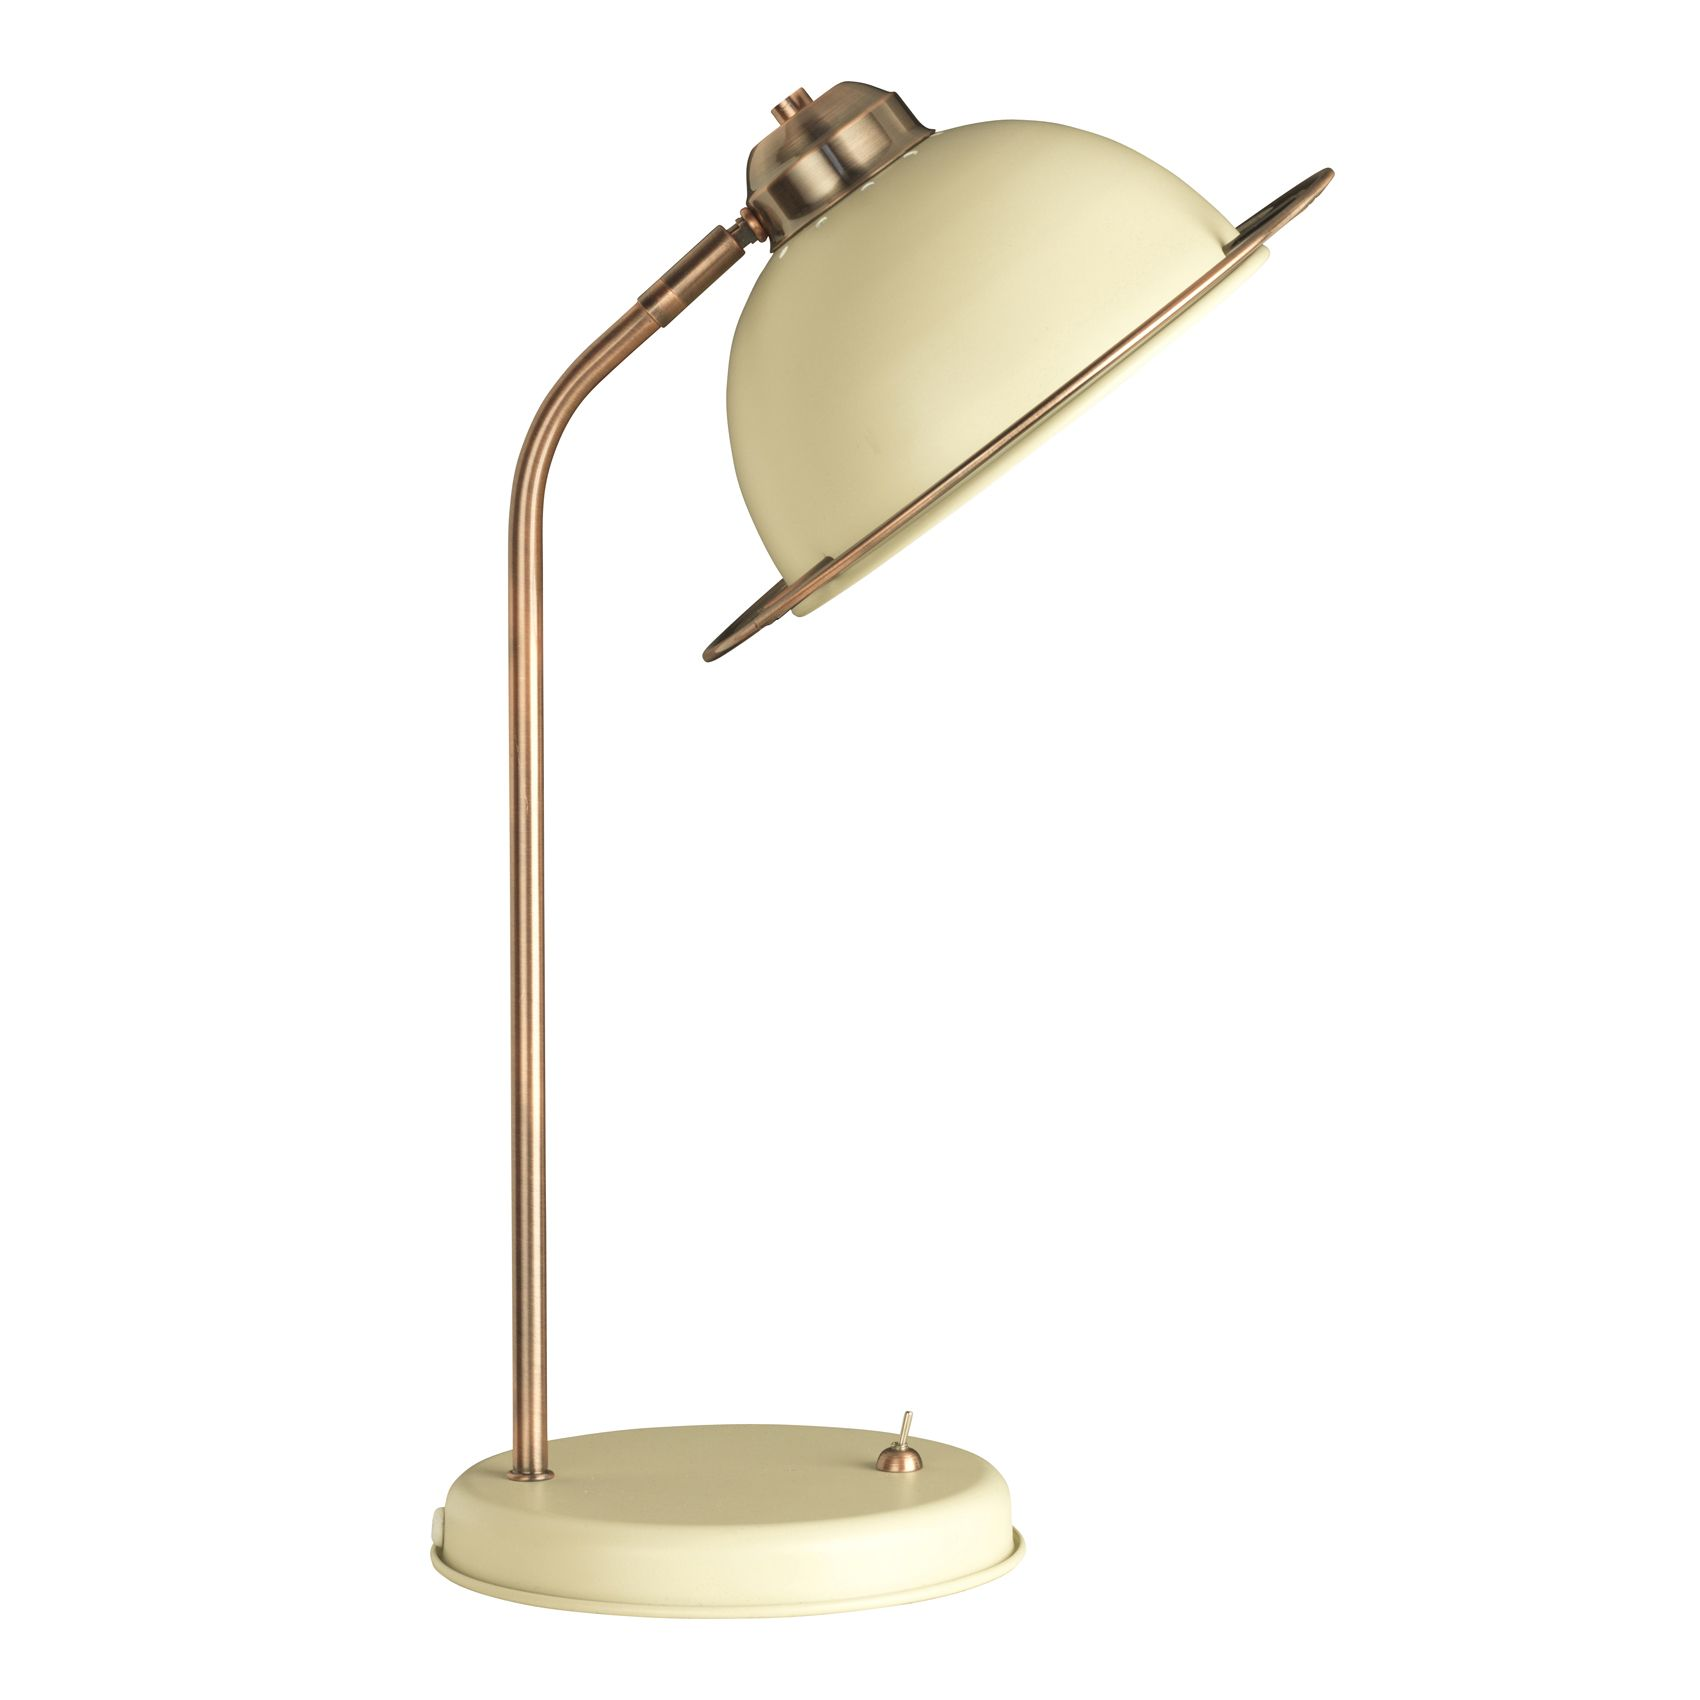 Large table lamps for living room - Large Retro Bauhaus Table Study Desk Lamp With Cream Shade Base Copper And Brushed Cream Finish Ideal For Bedside Reading Study Lamp And Work Light